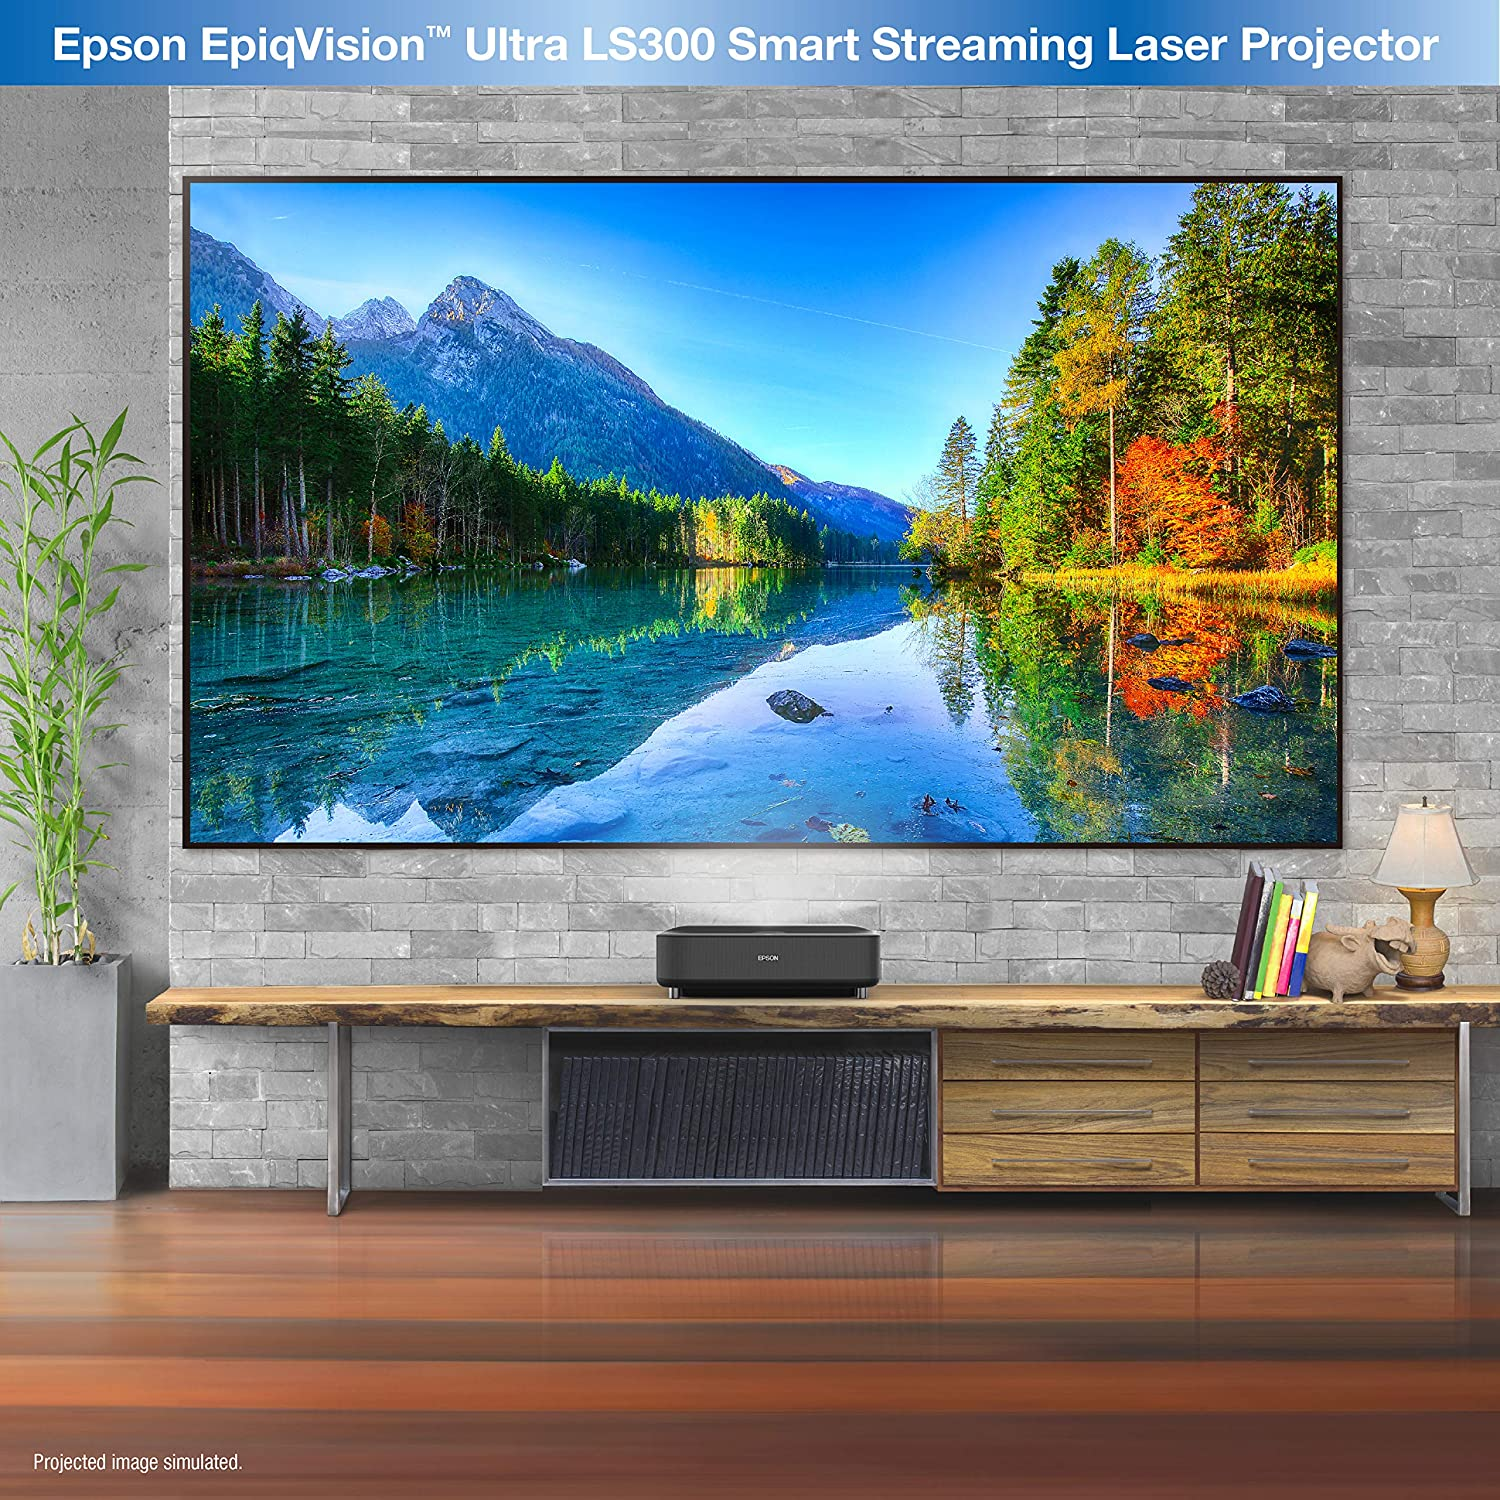 Epson EpiqVision Ultra LS300 picture quality projection